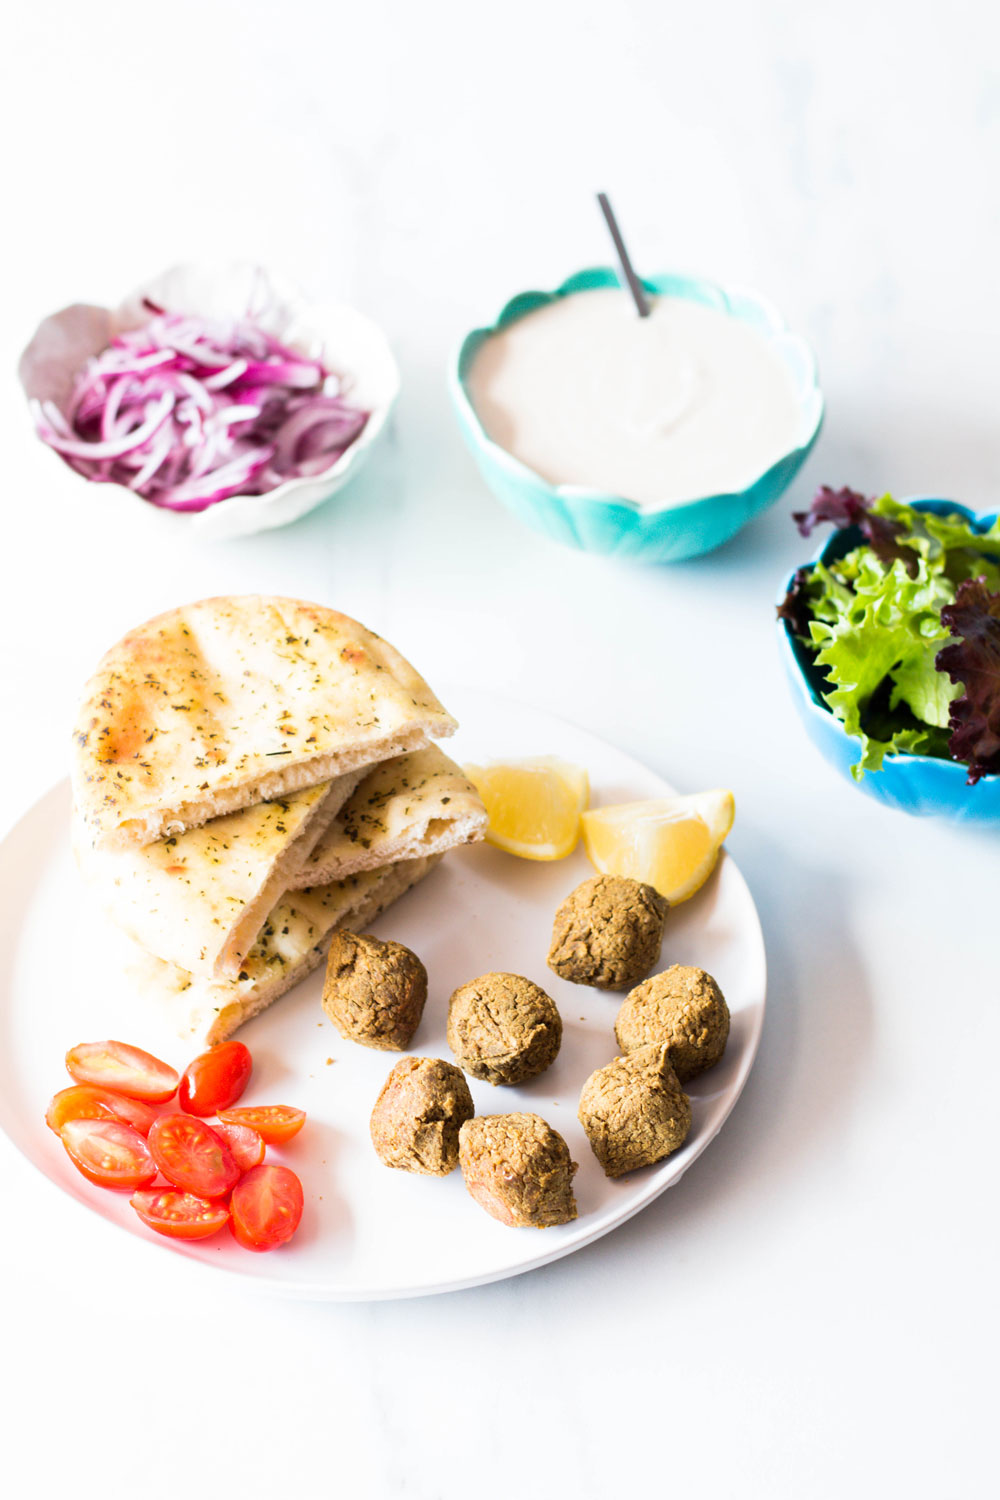 These Baked Sweet Potato Falafels with Creamy Tahini Sauce are one easy-to-make midweek dinner. They can be baked or fried, taste incredible in pita sandwichs or salads, and are gluten-free and vegetarian! https://www.spotebi.com/recipes/baked-sweet-potato-falafels-creamy-tahini-sauce/